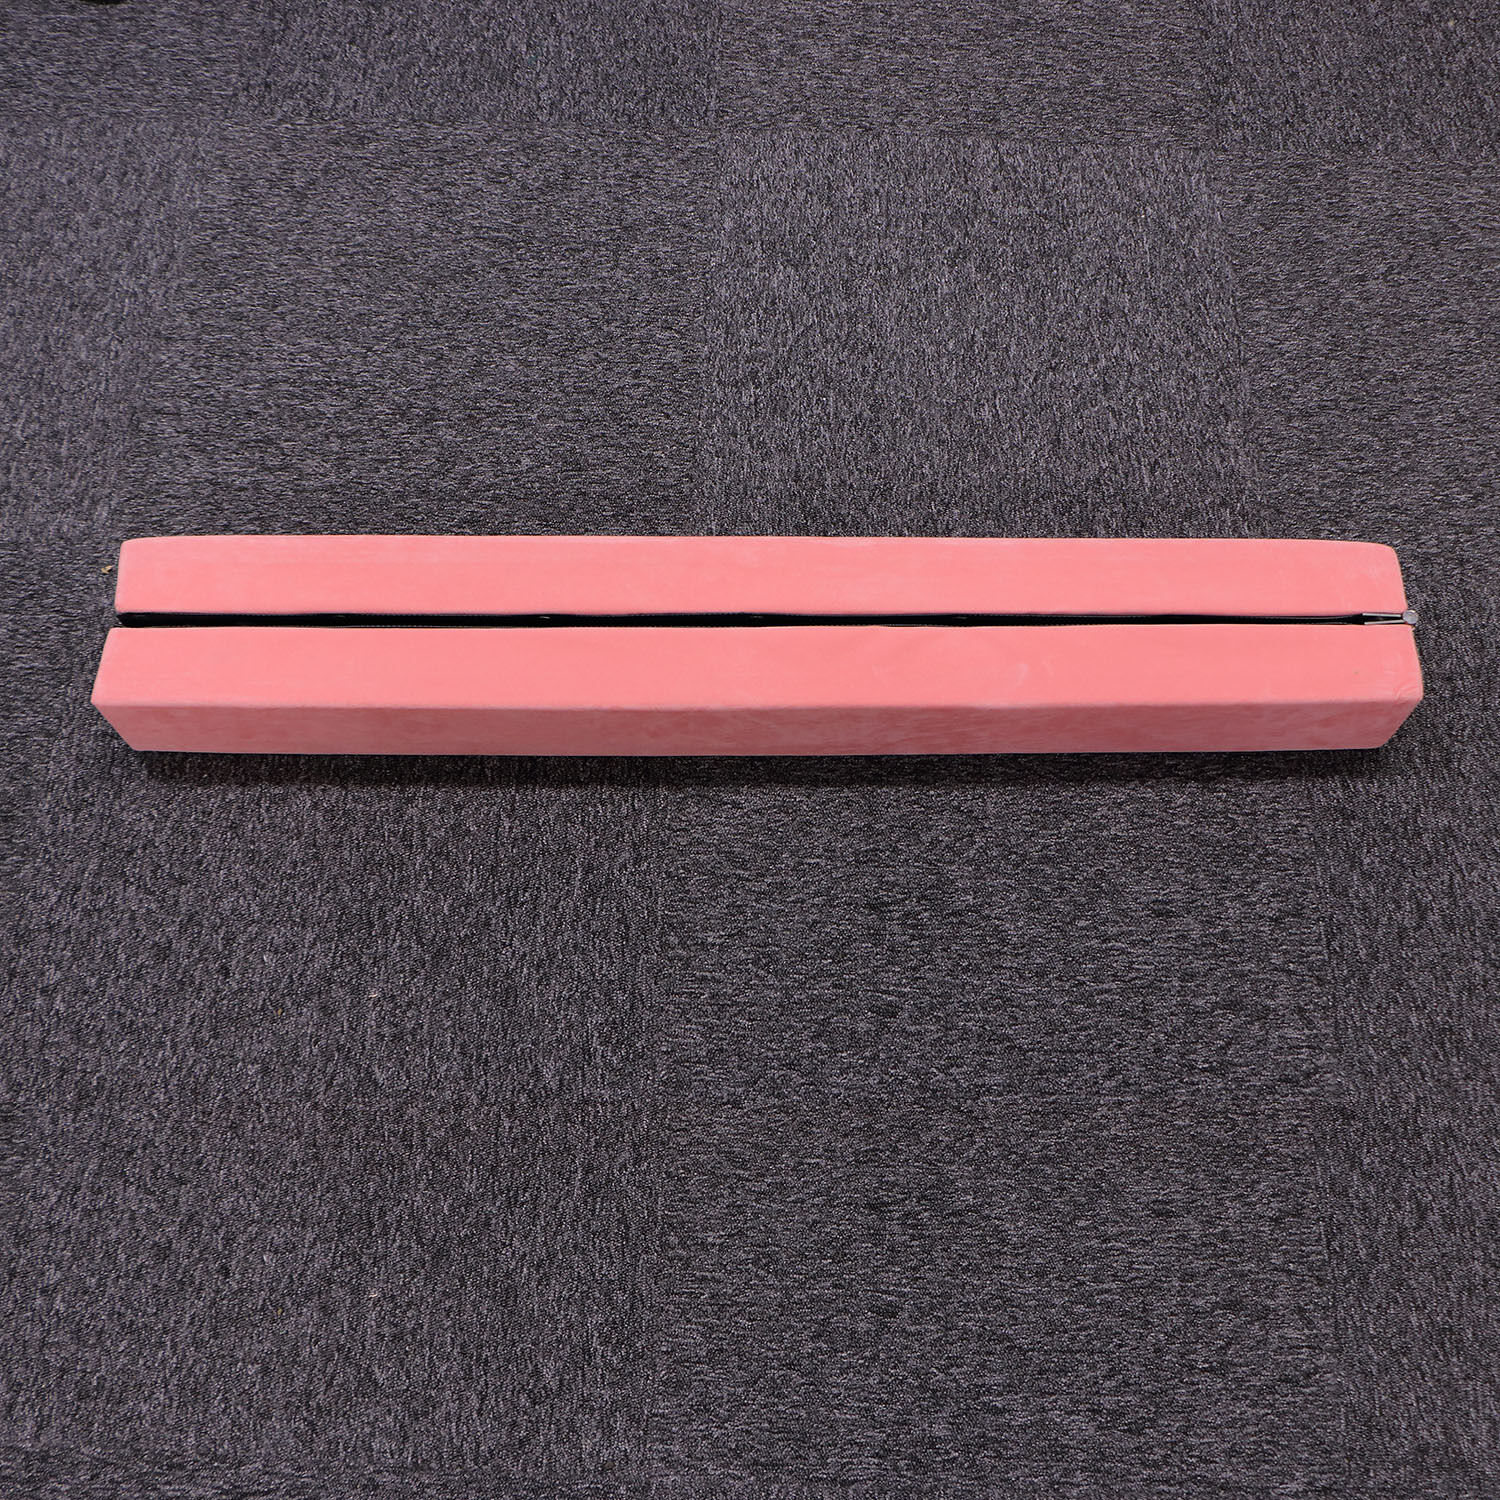 Pink 7FT Sectional Balance Beam Athletics Gymnastics Fitness Skill Performance